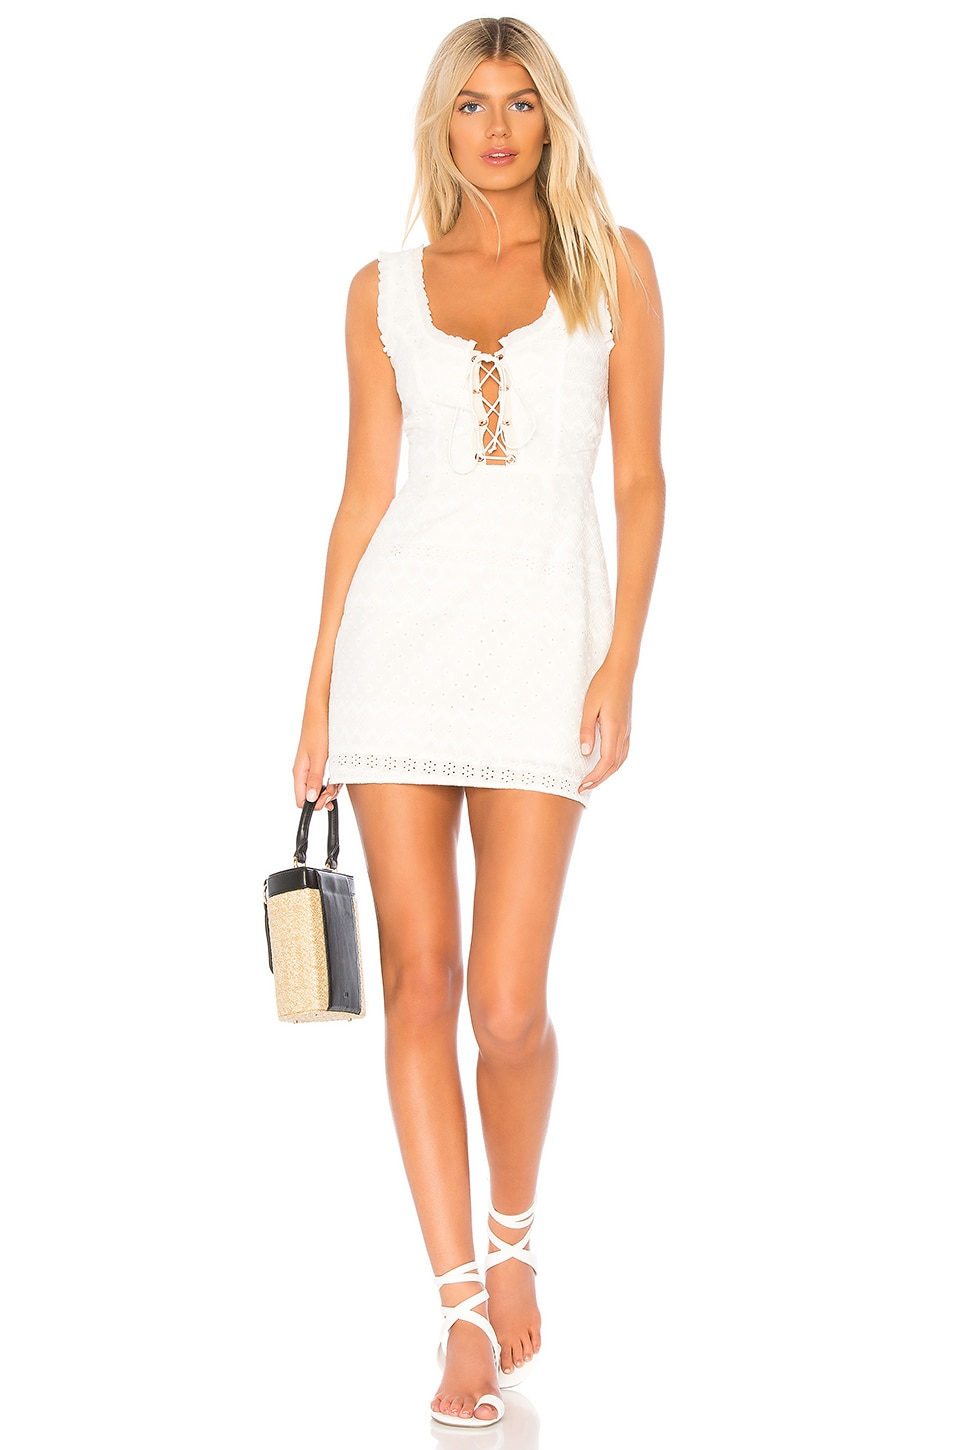 CHARLOTTE EYELET LACE UP MINI DRESS from REVOLVE